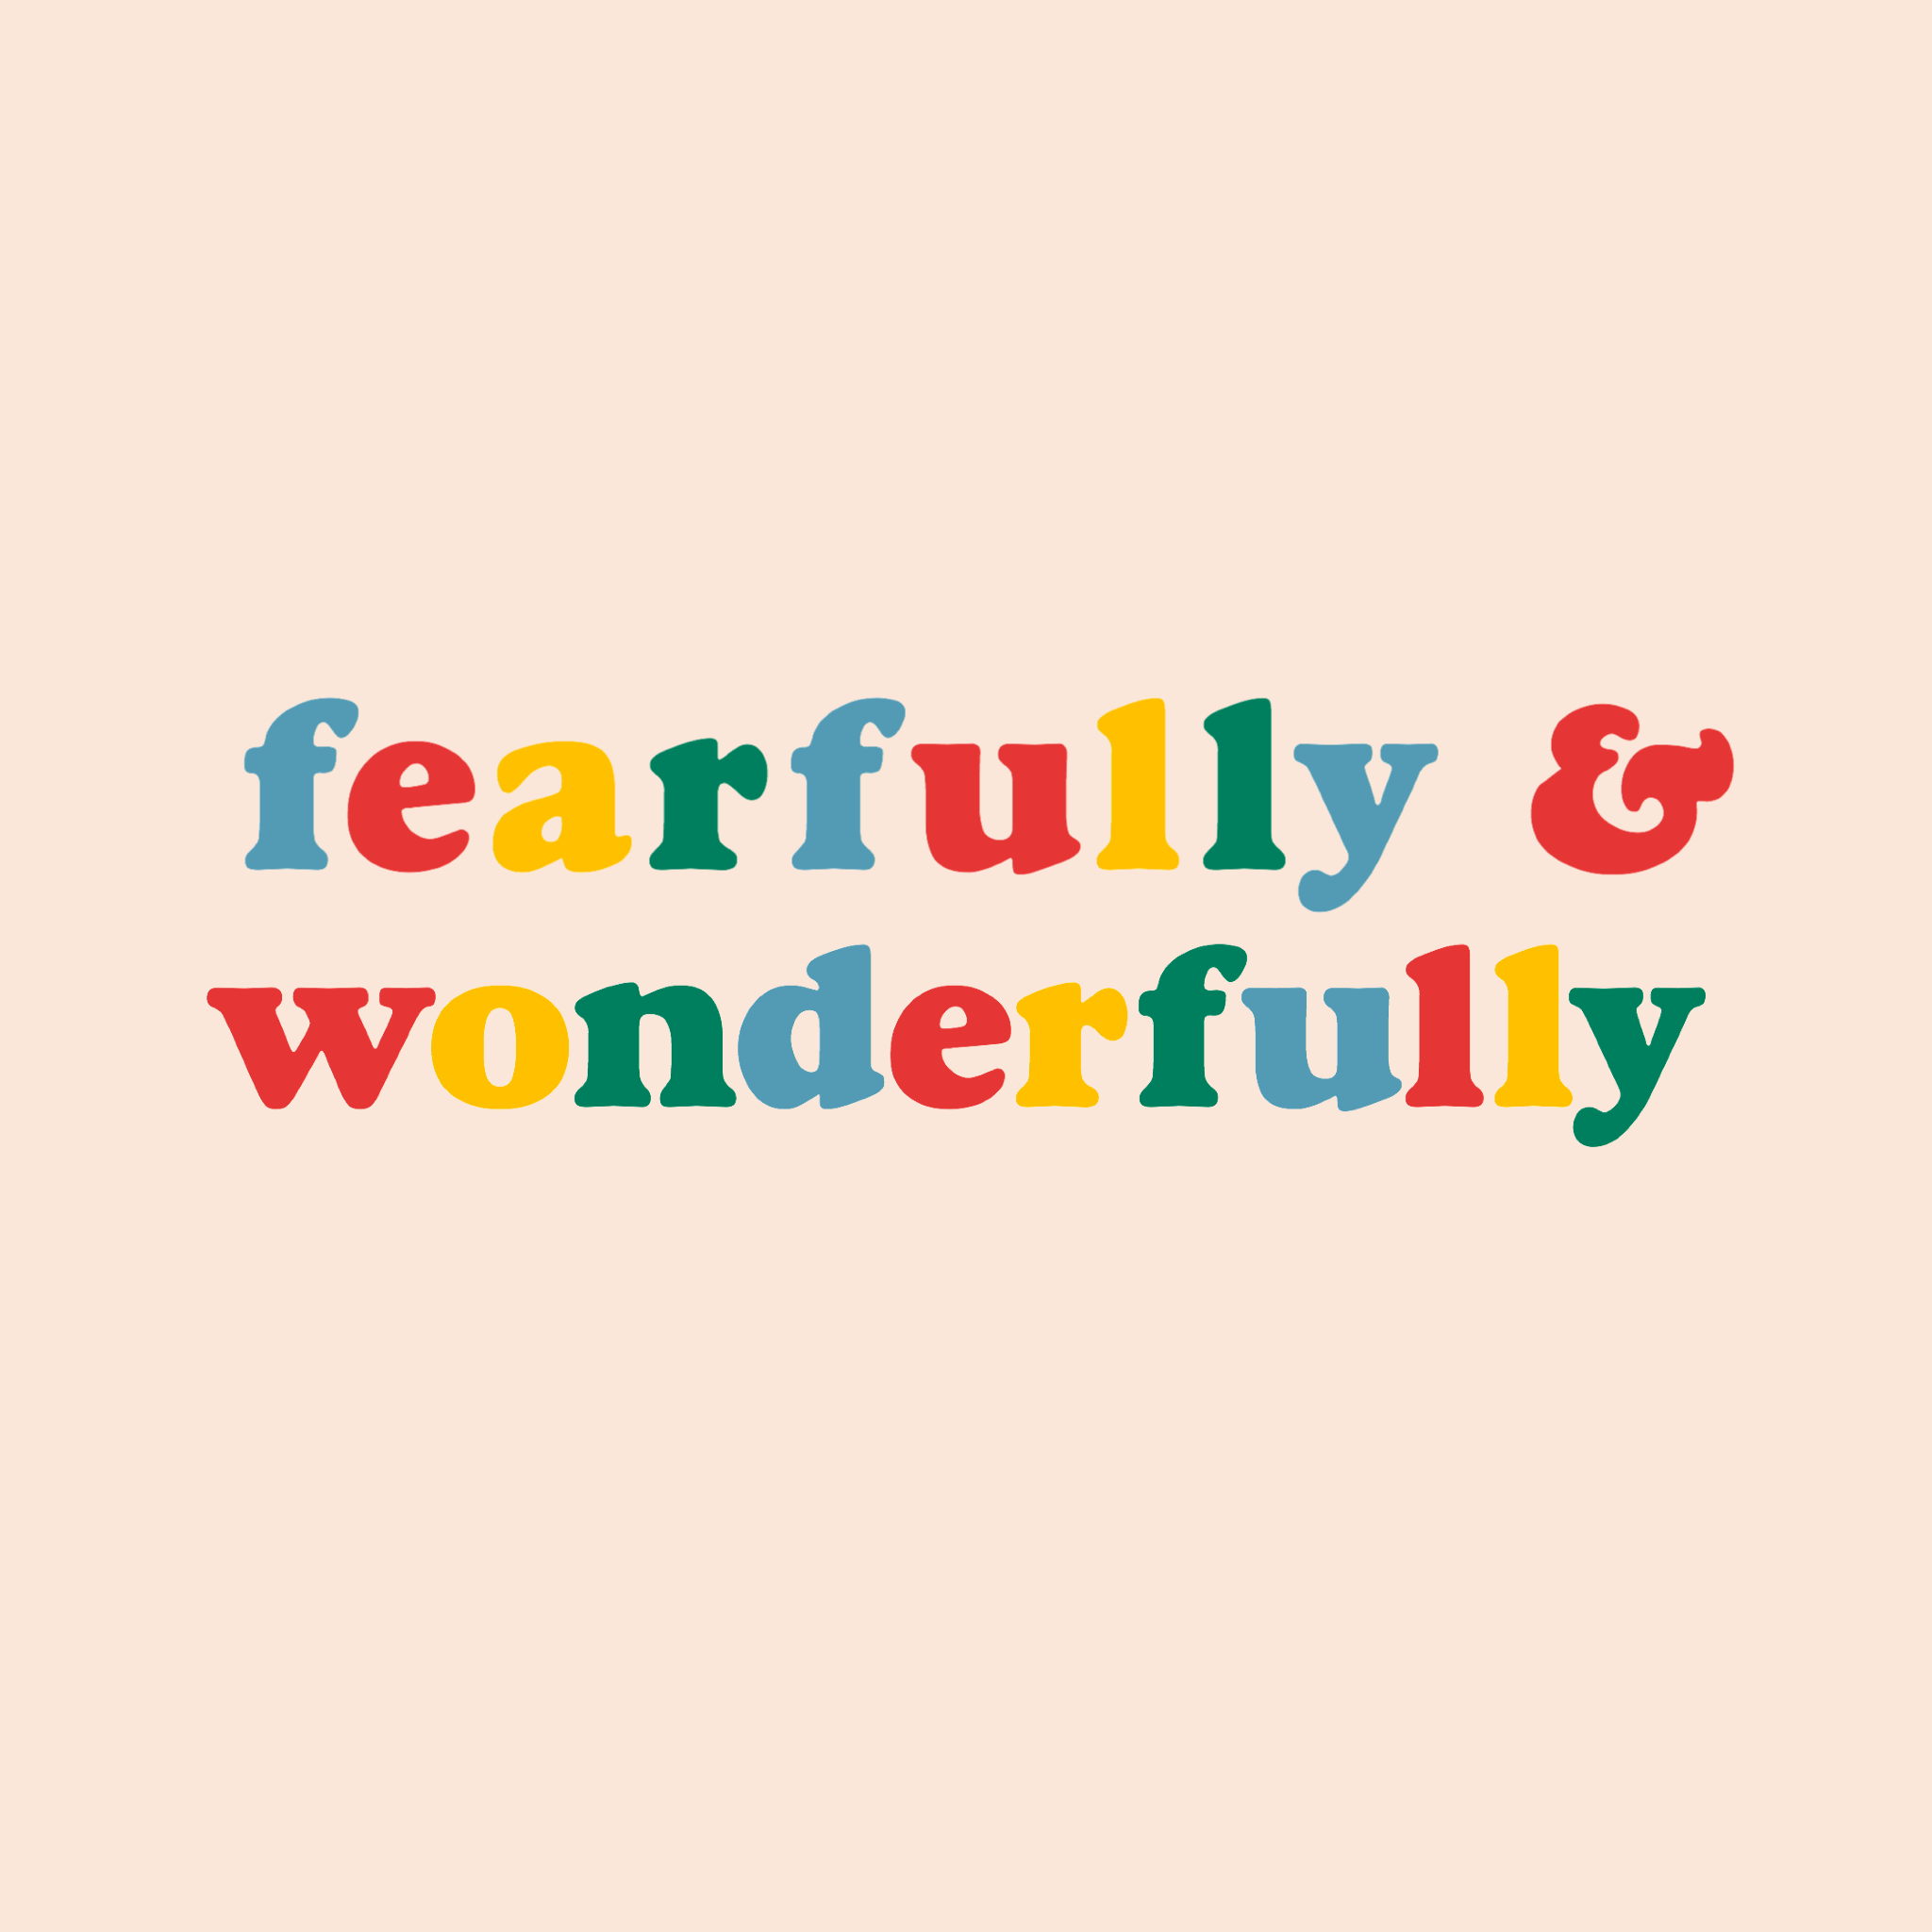 Psalm 139 14 Fearfully And Wonderfully Made Print By Glowingly On Redbubble Redbubble Com People Glo Rainbow Aesthetic Wall Art Quotes Photo Wall Collage